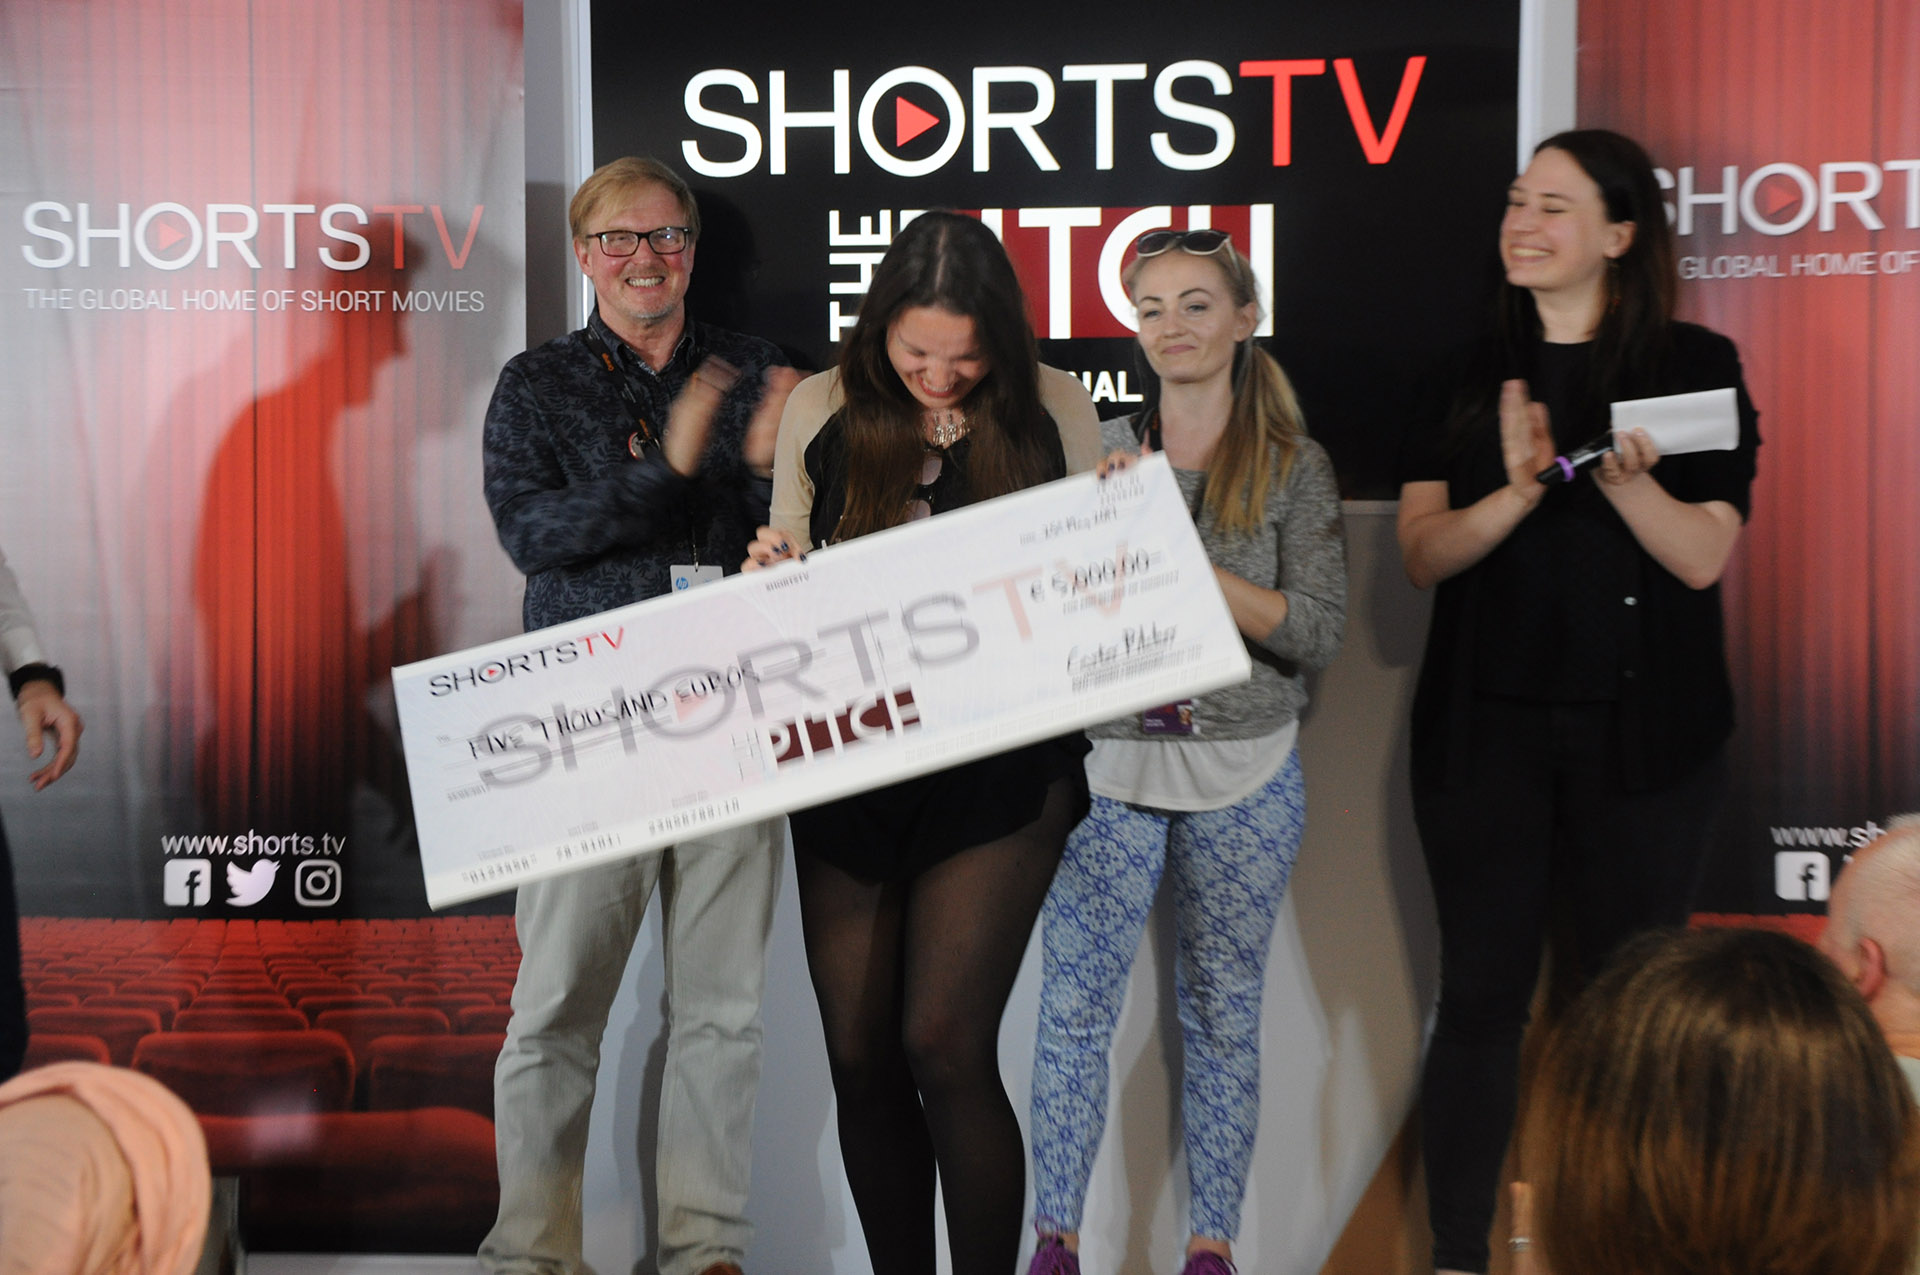 The jury award Kyla Simon Bruce with her cheque for 5000 Euros!